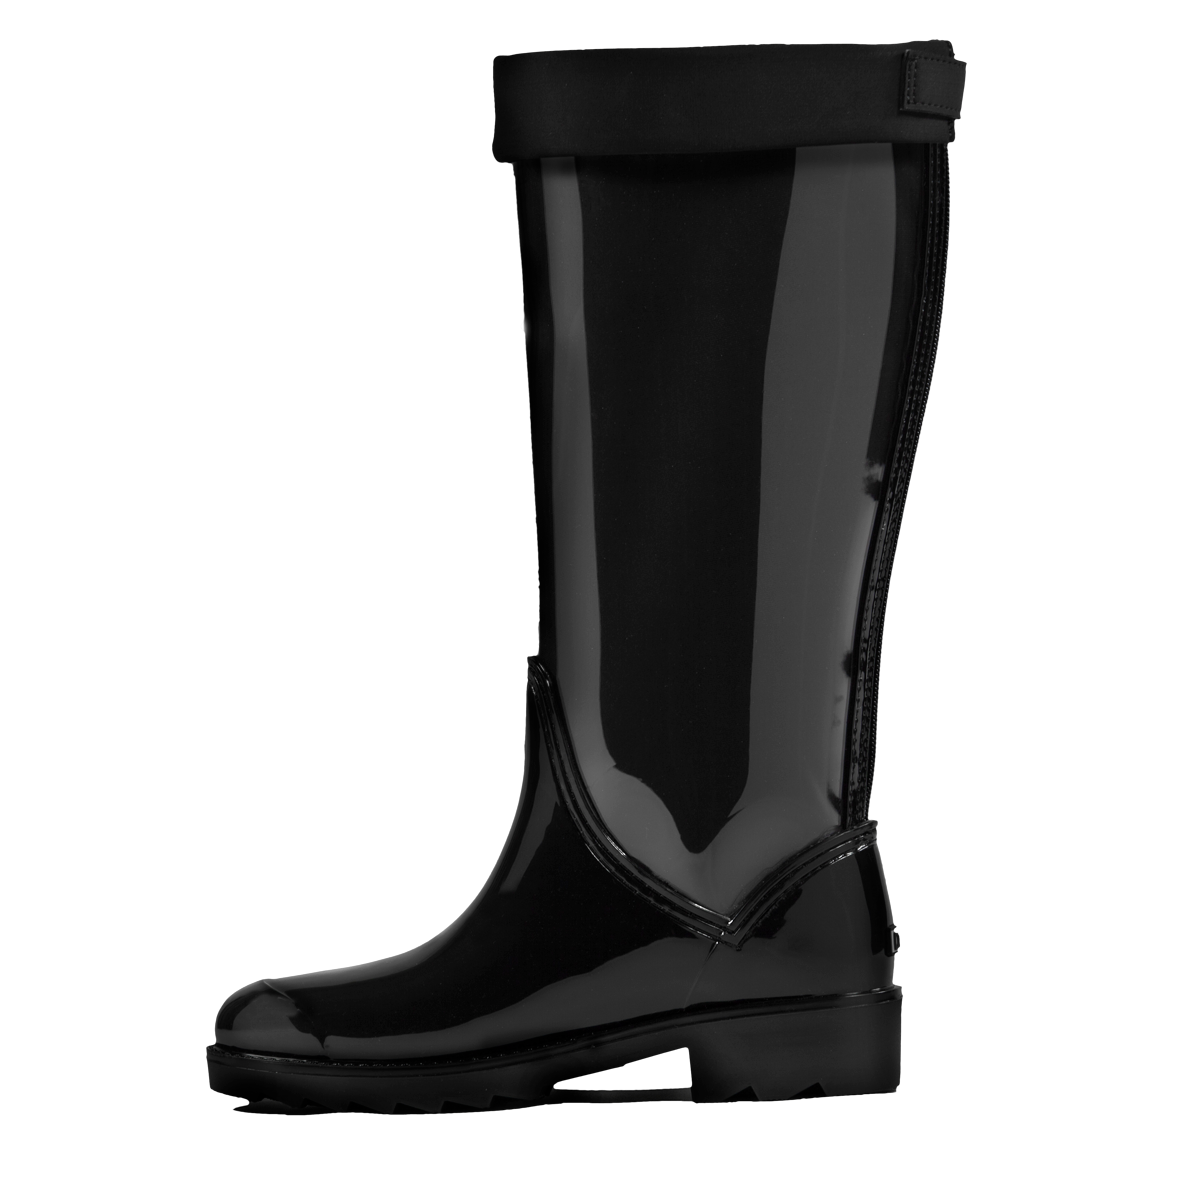 Rain boots png. Decz boot footwear